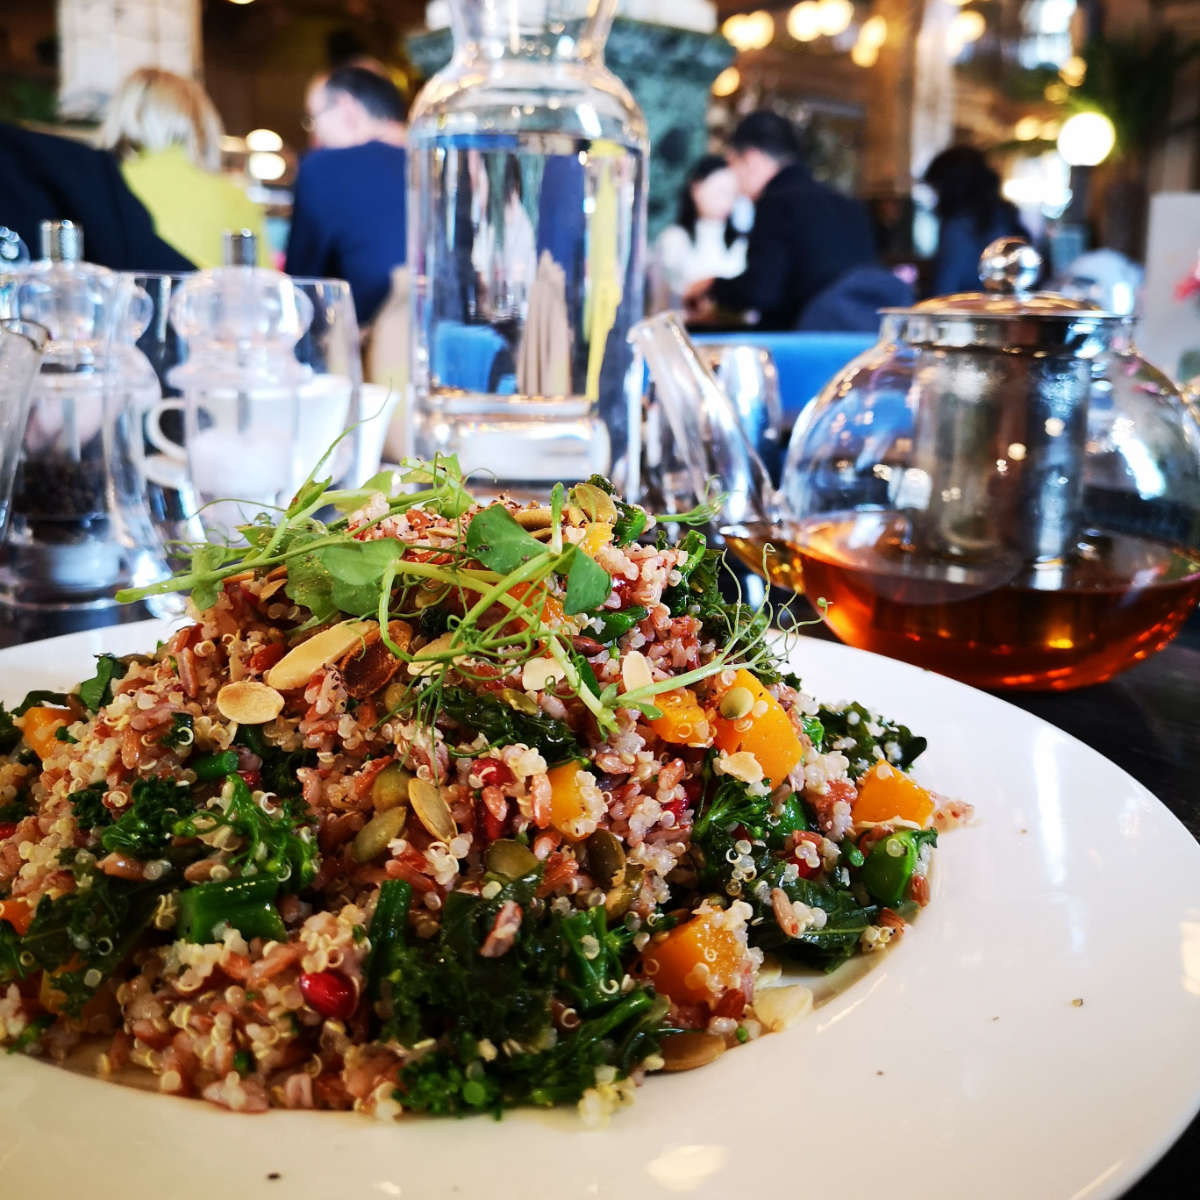 Vegan superfood salad at The Grand Cafe, Edinburgh